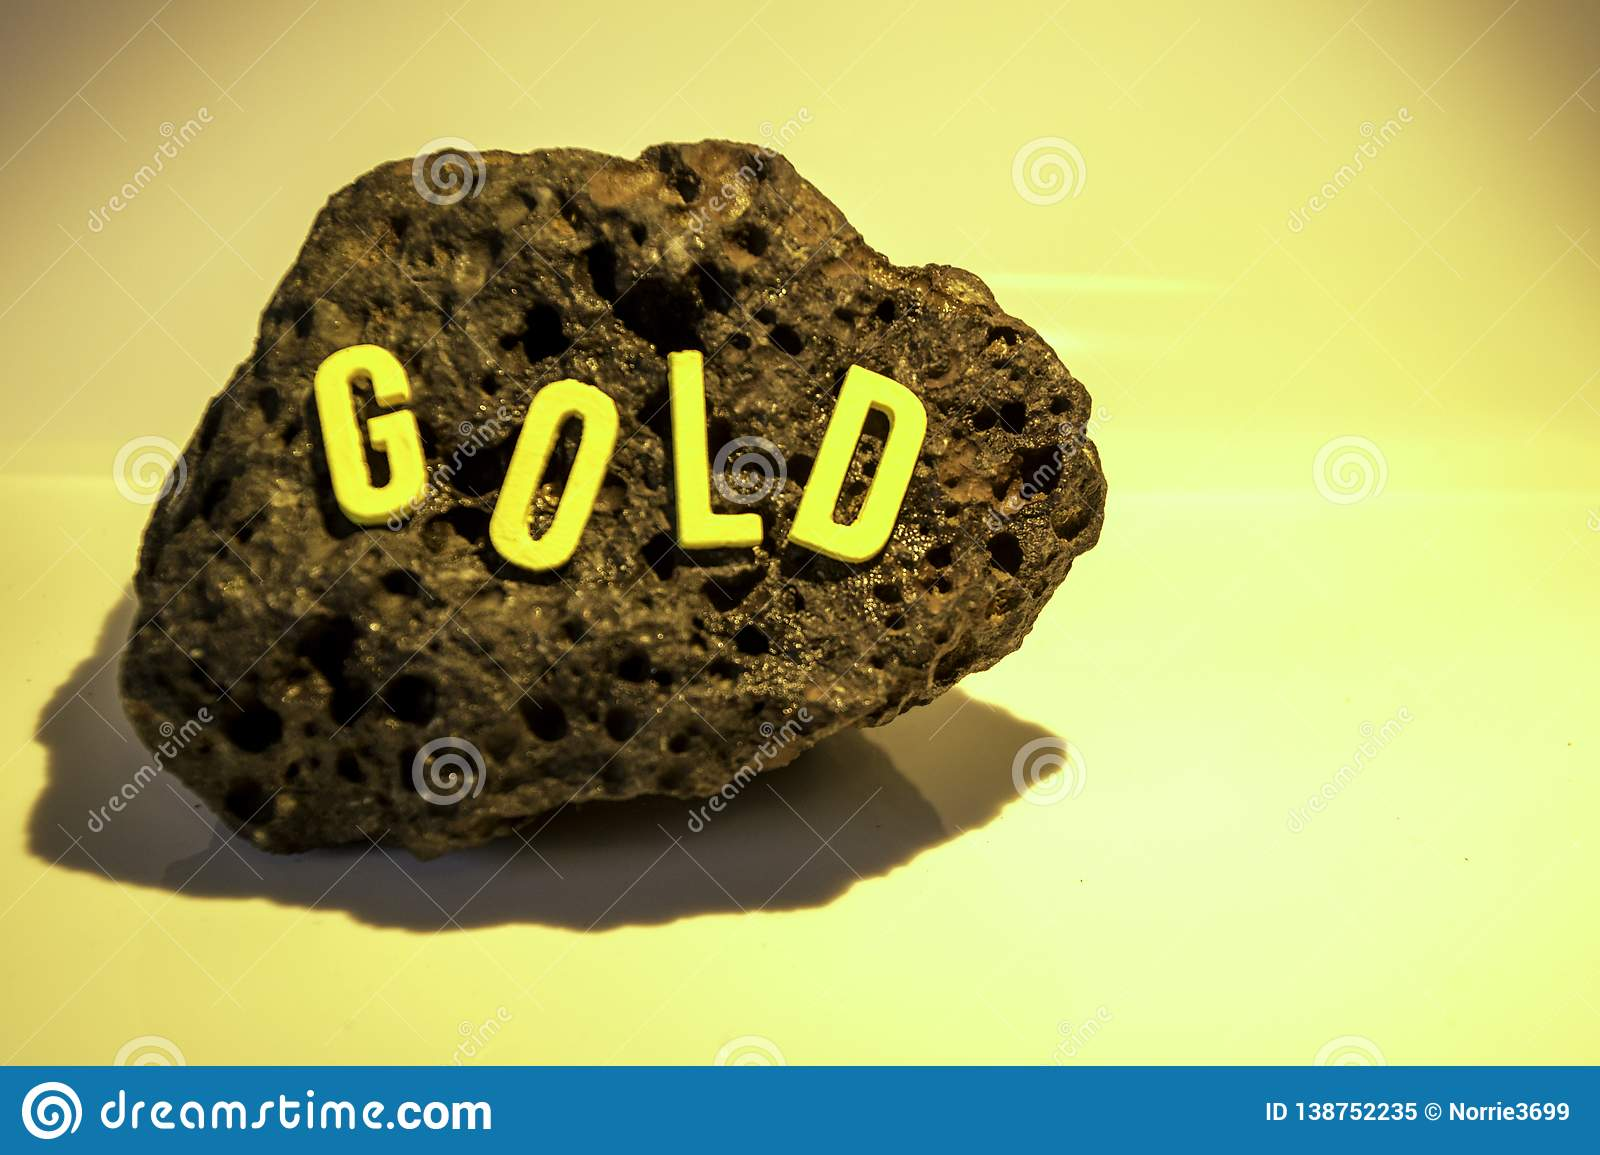 cb2906528bb The word Gold on a rock surface to show the findings of any item really  whether it be historic